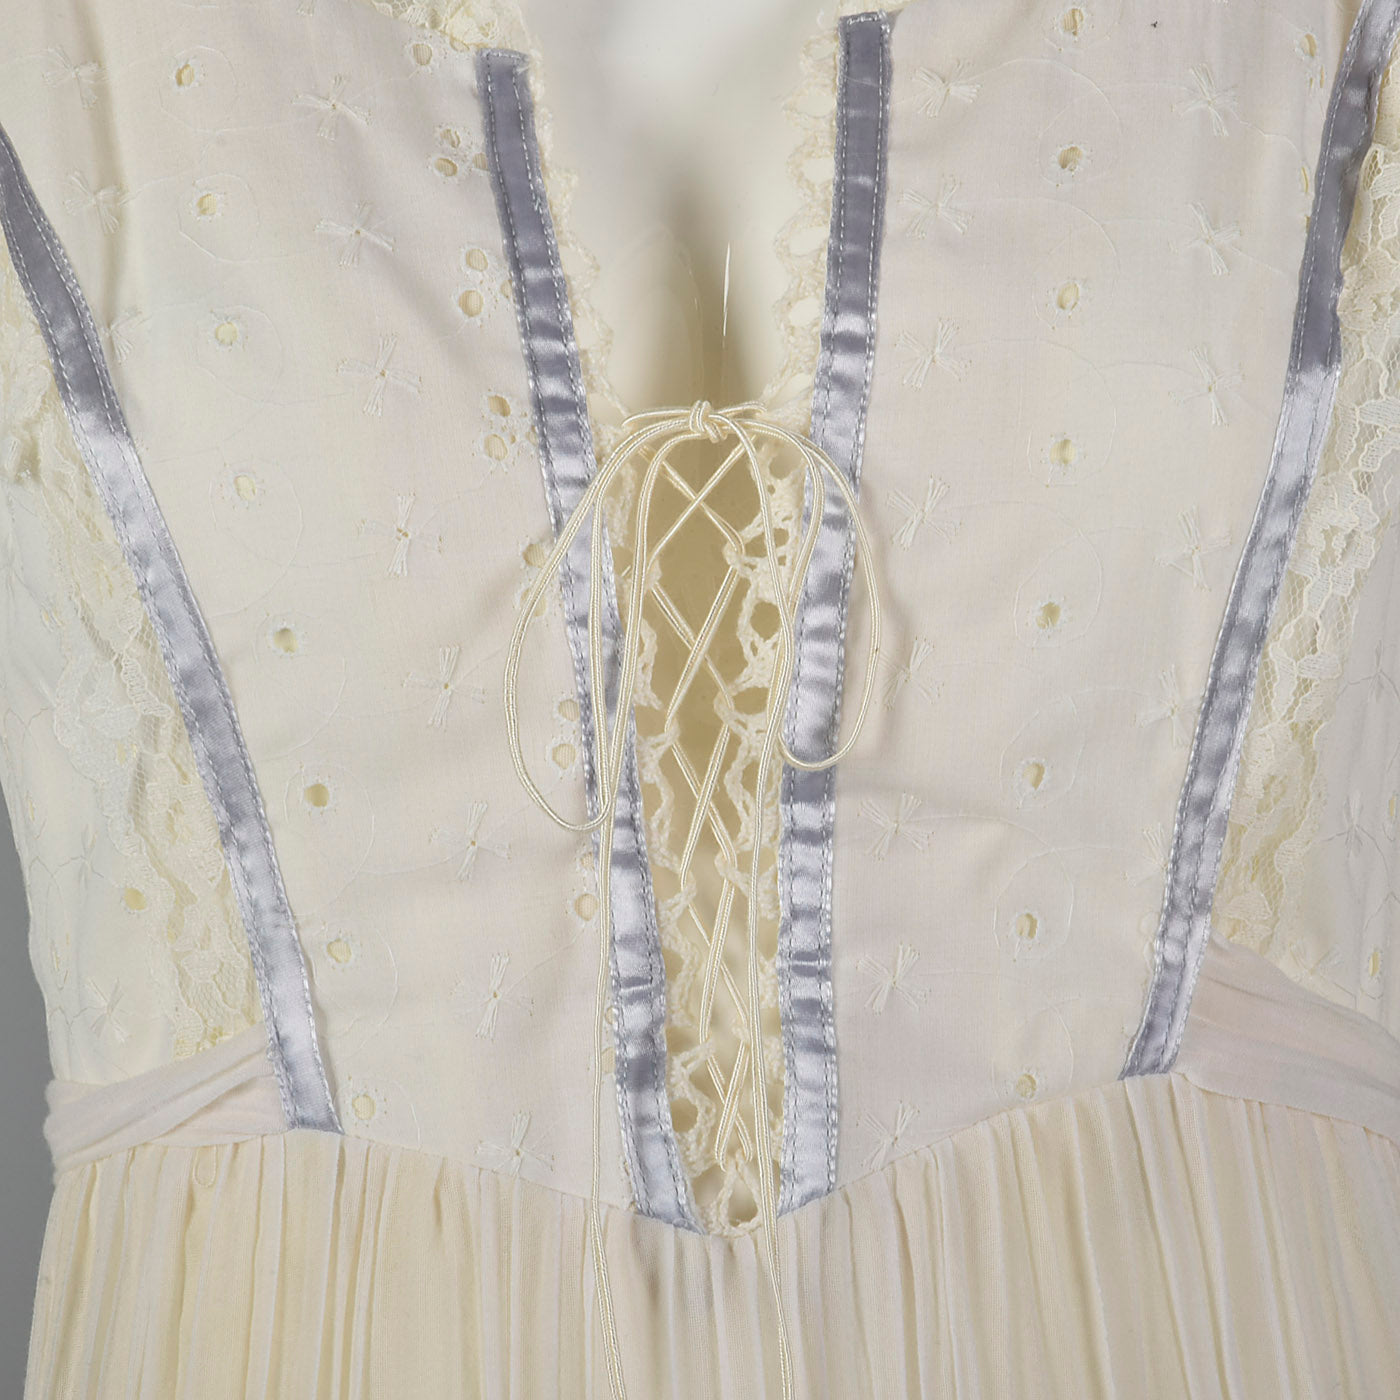 1970s Bohemian Dress with Laced Corset Bodice